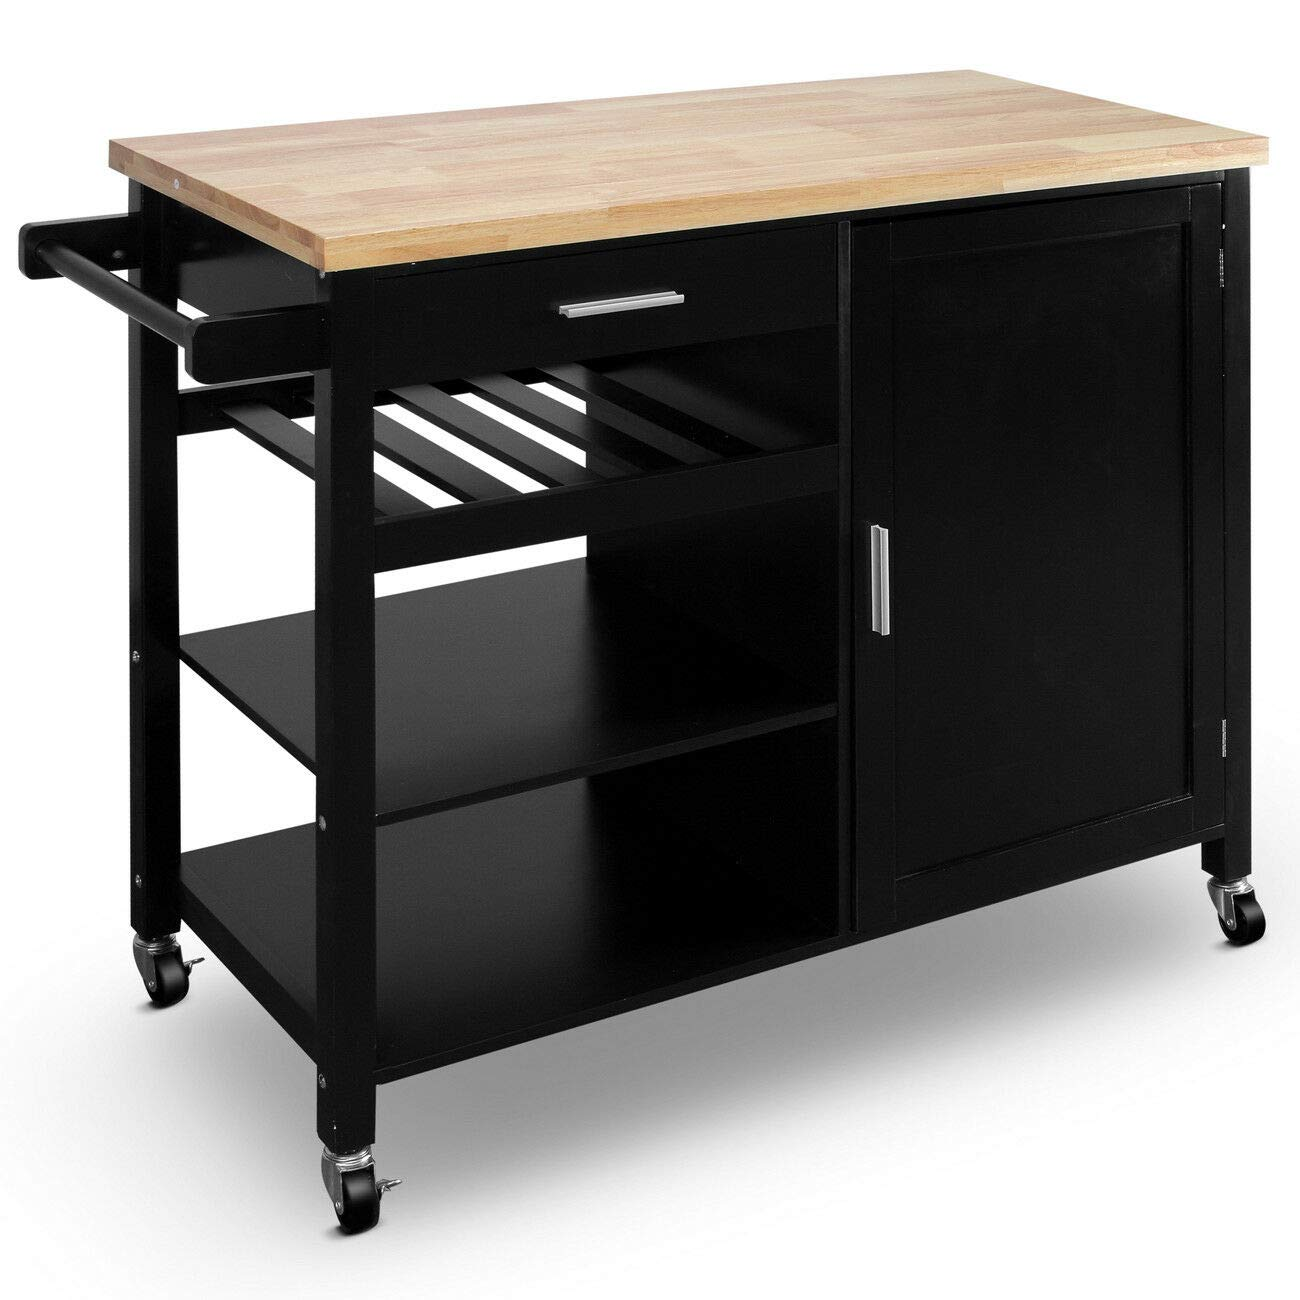 FossExpress Cooking Table w/Wheels, Suitable for use in The Kitchen, w/Storage Drawers - Black